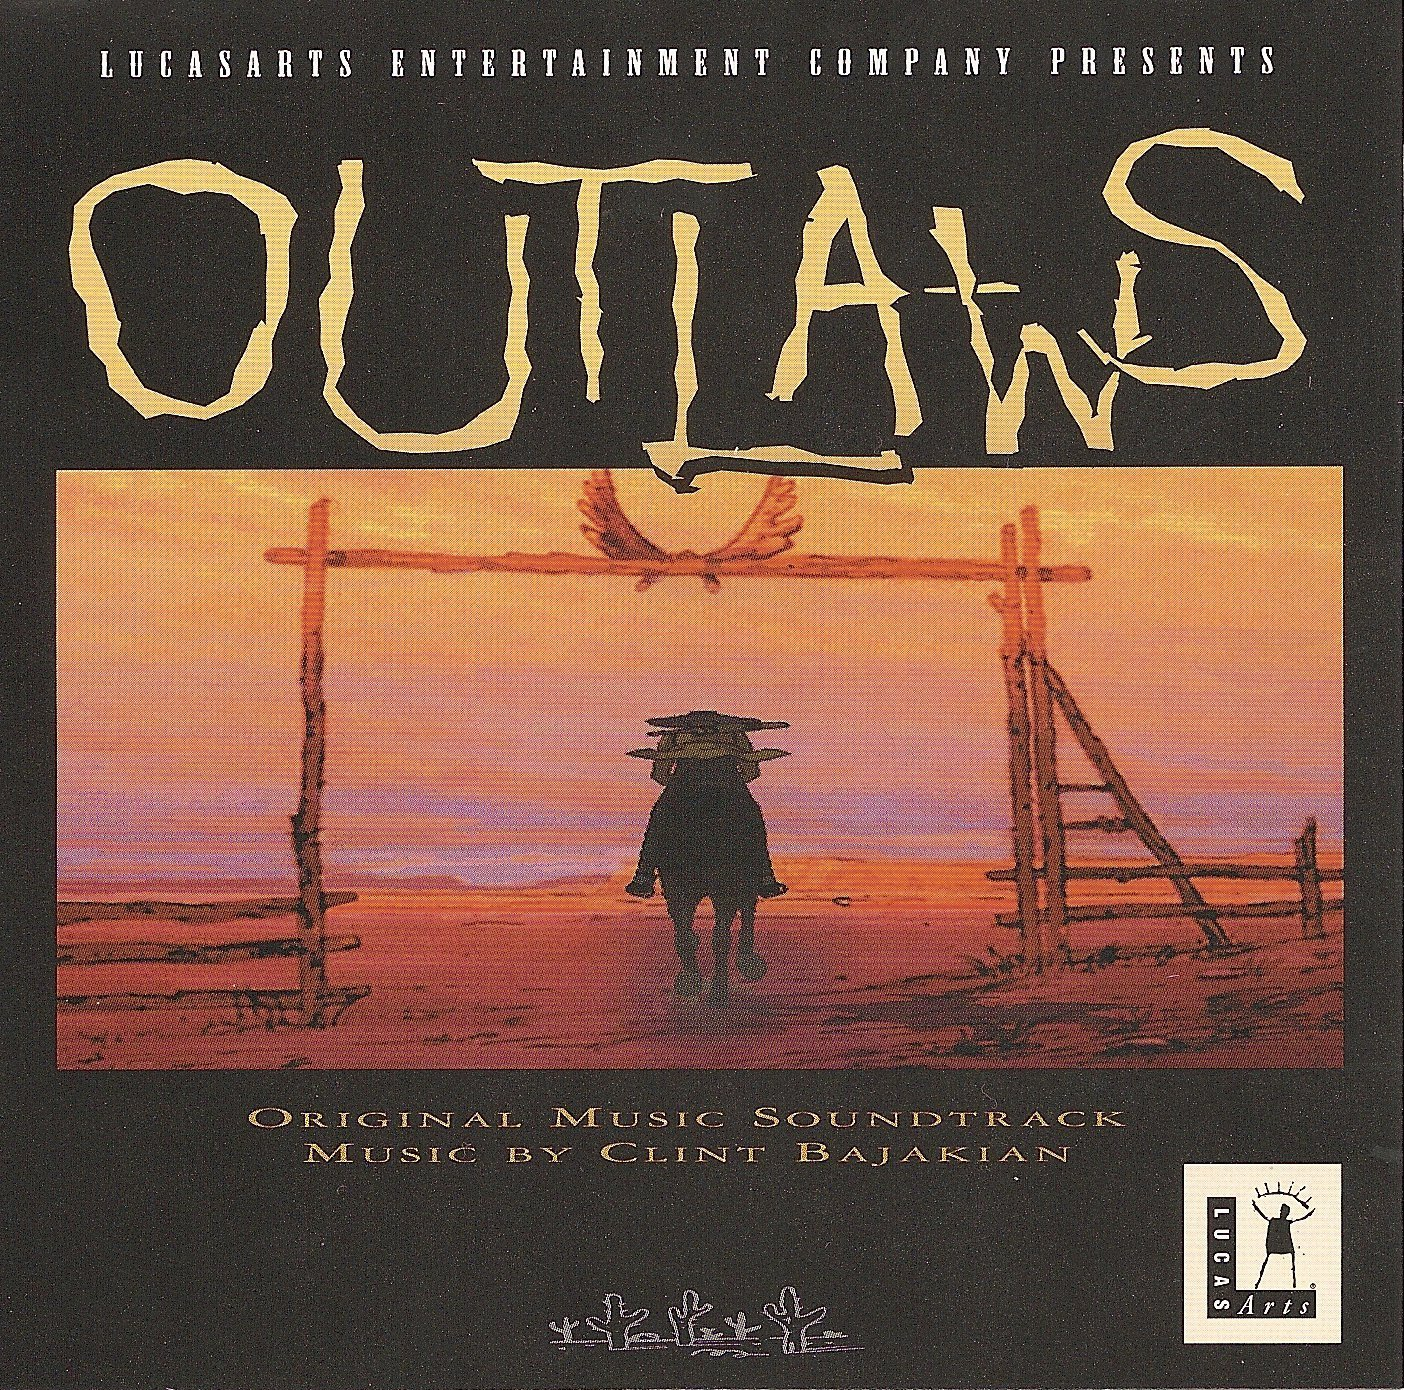 Outlaws Original Music Soundtrack